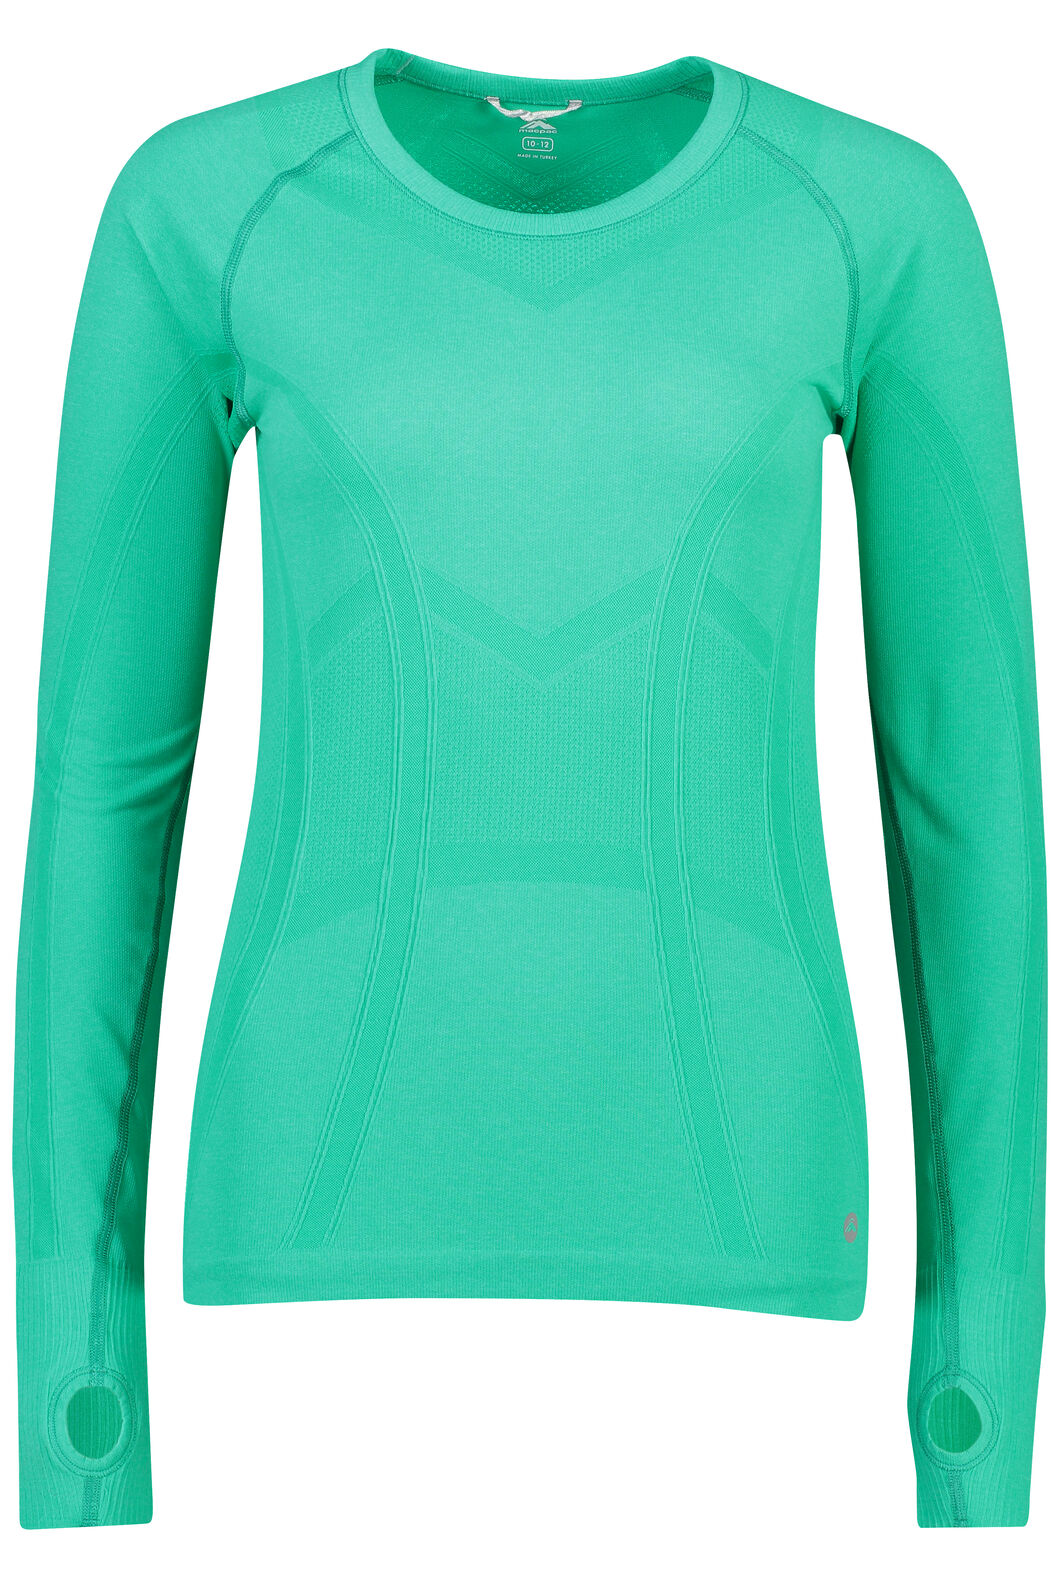 Limitless Long Sleeve Tee - Women's, Deep Green, hi-res